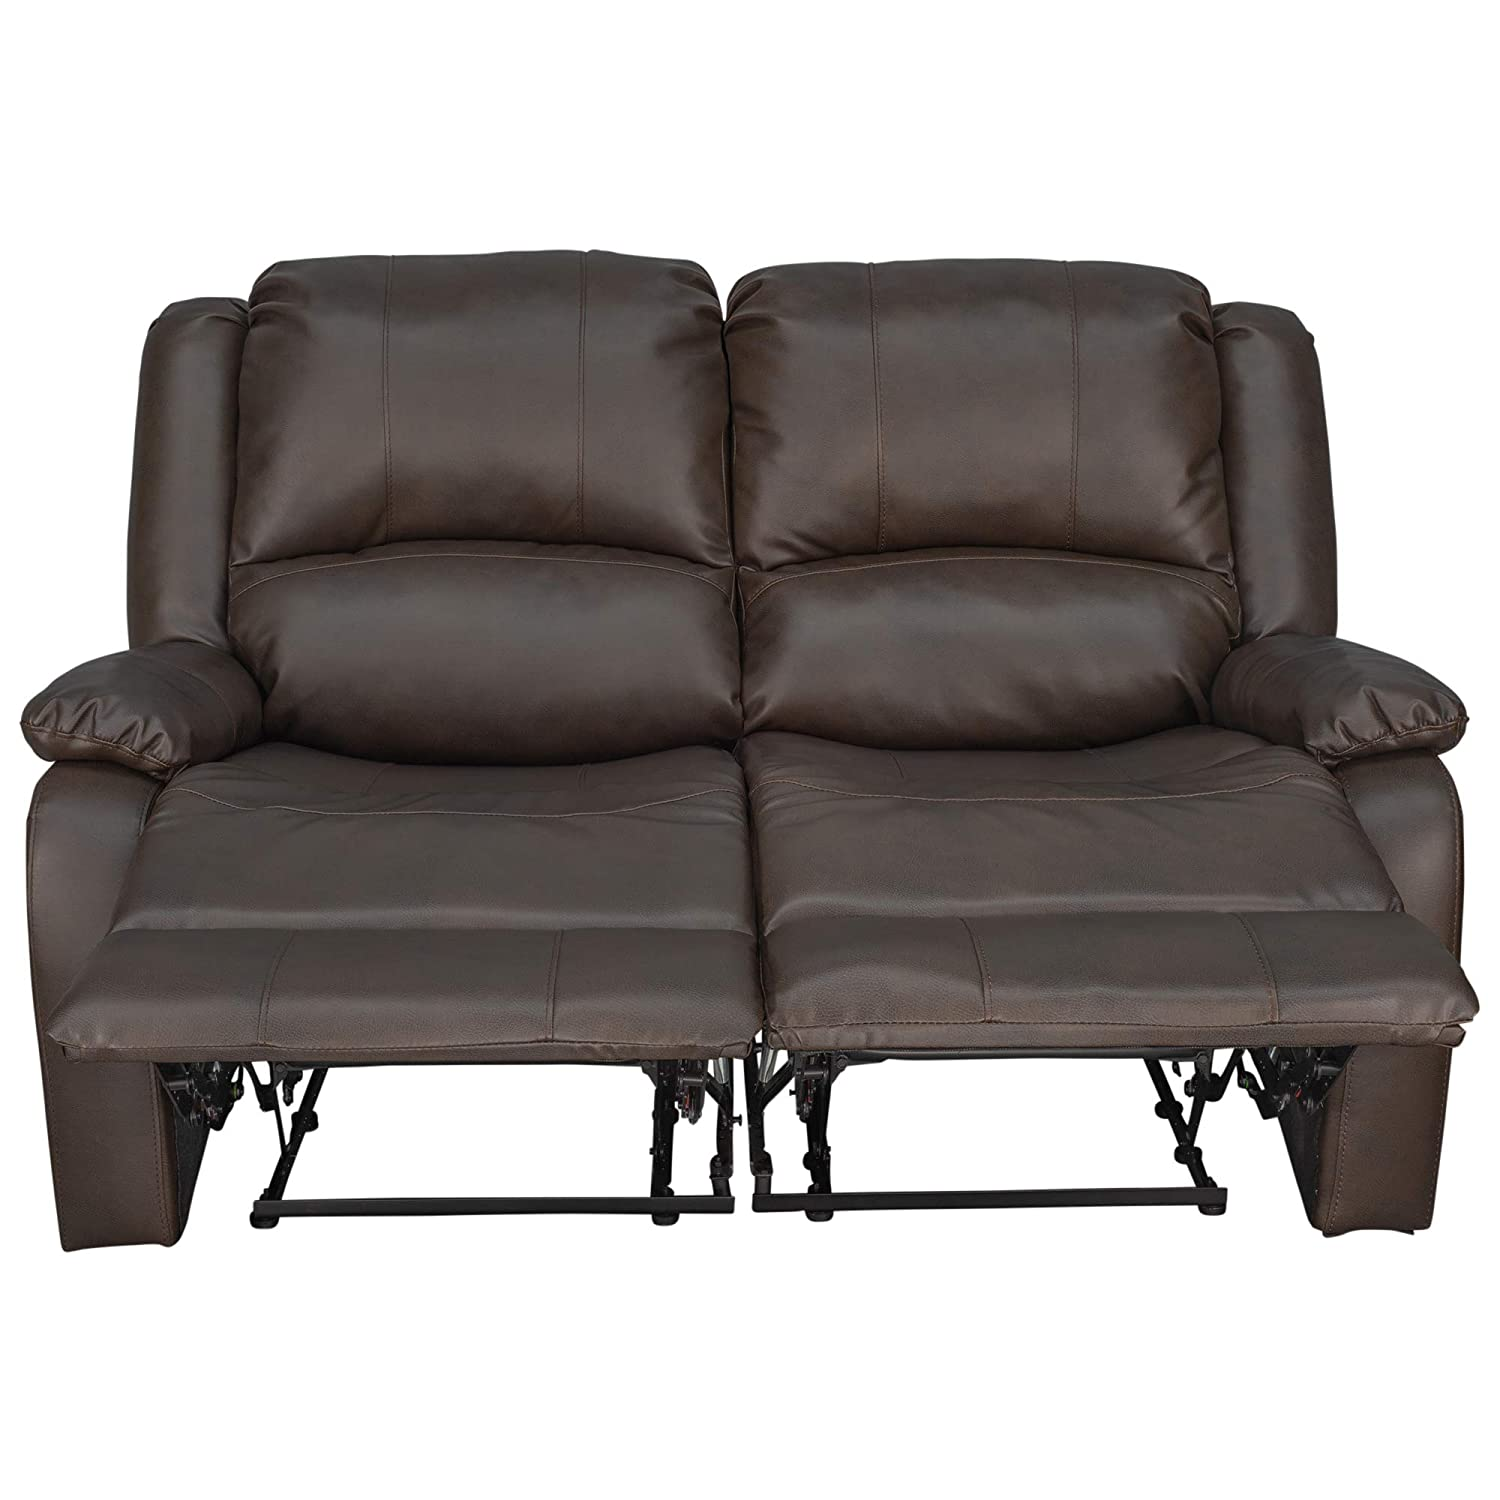 Outstanding Recpro Charles Collection 58 Double Recliner Rv Sofa Rv Zero Wall Loveseat Wall Hugger Recliner Rv Theater Seating Rv Furniture Rv Sofa Camellatalisay Diy Chair Ideas Camellatalisaycom